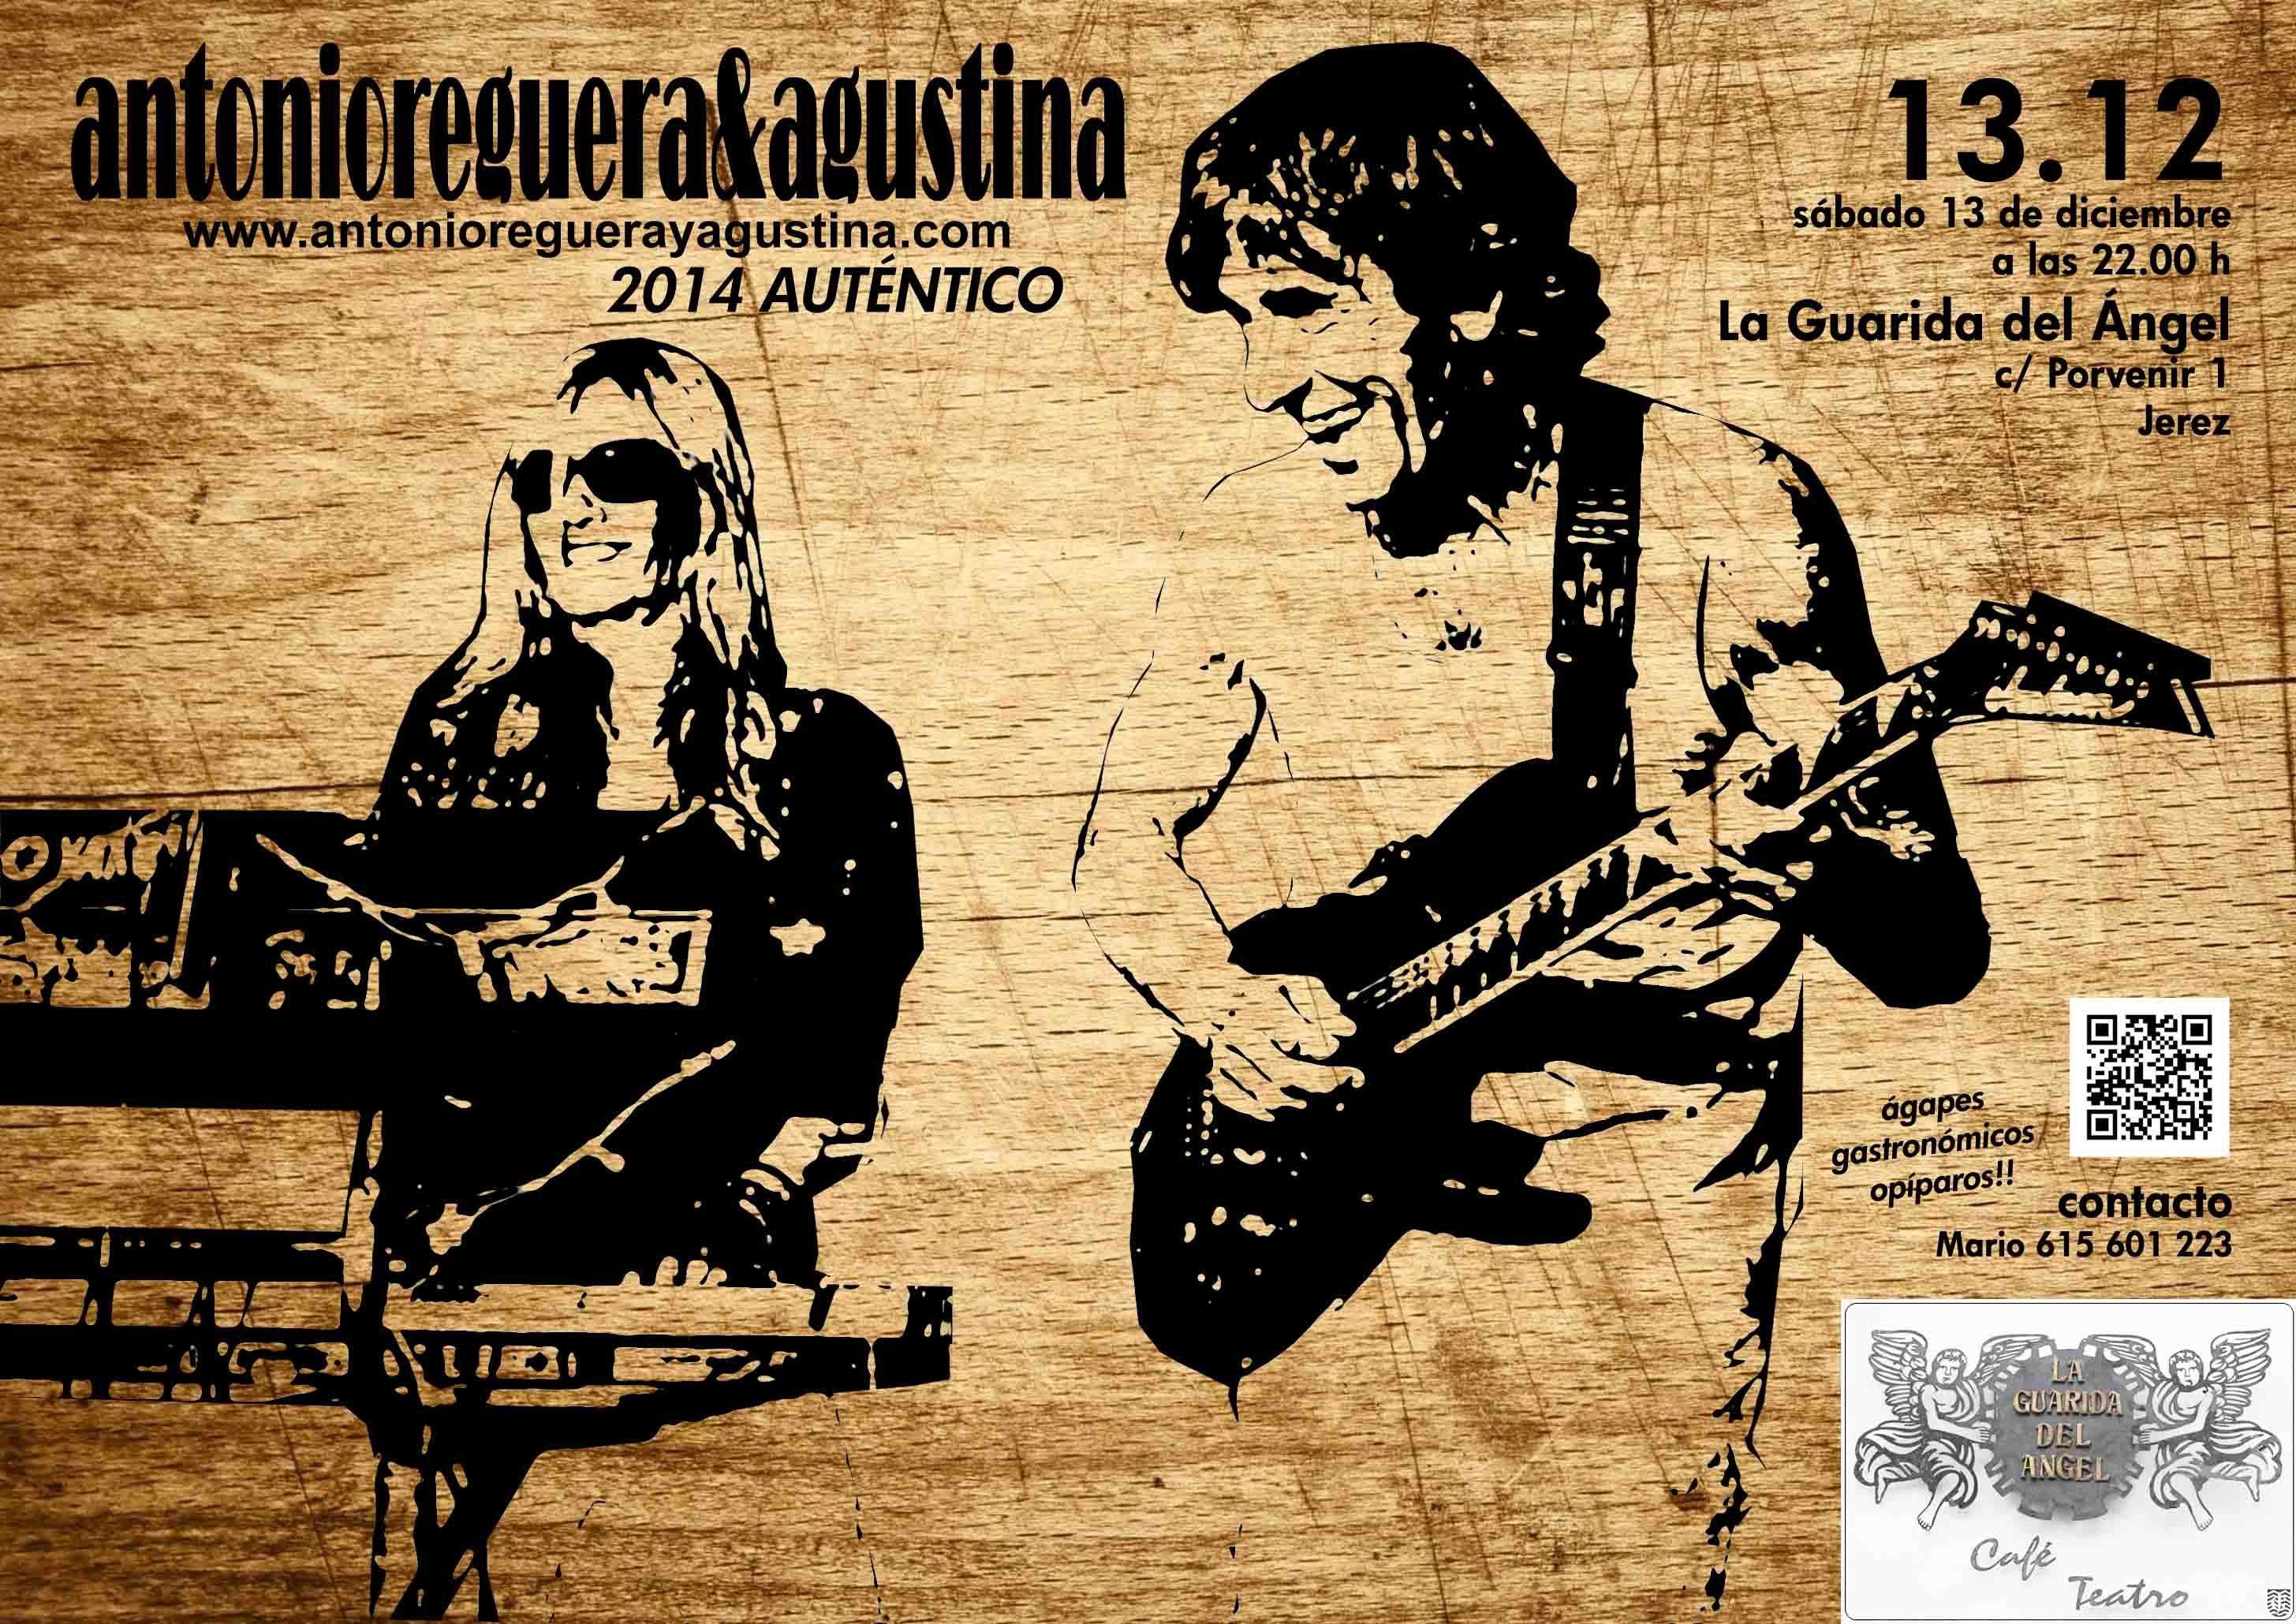 CARTEL BLOG GUARIDA DEL ANGEL DICIEMBRE.jpg